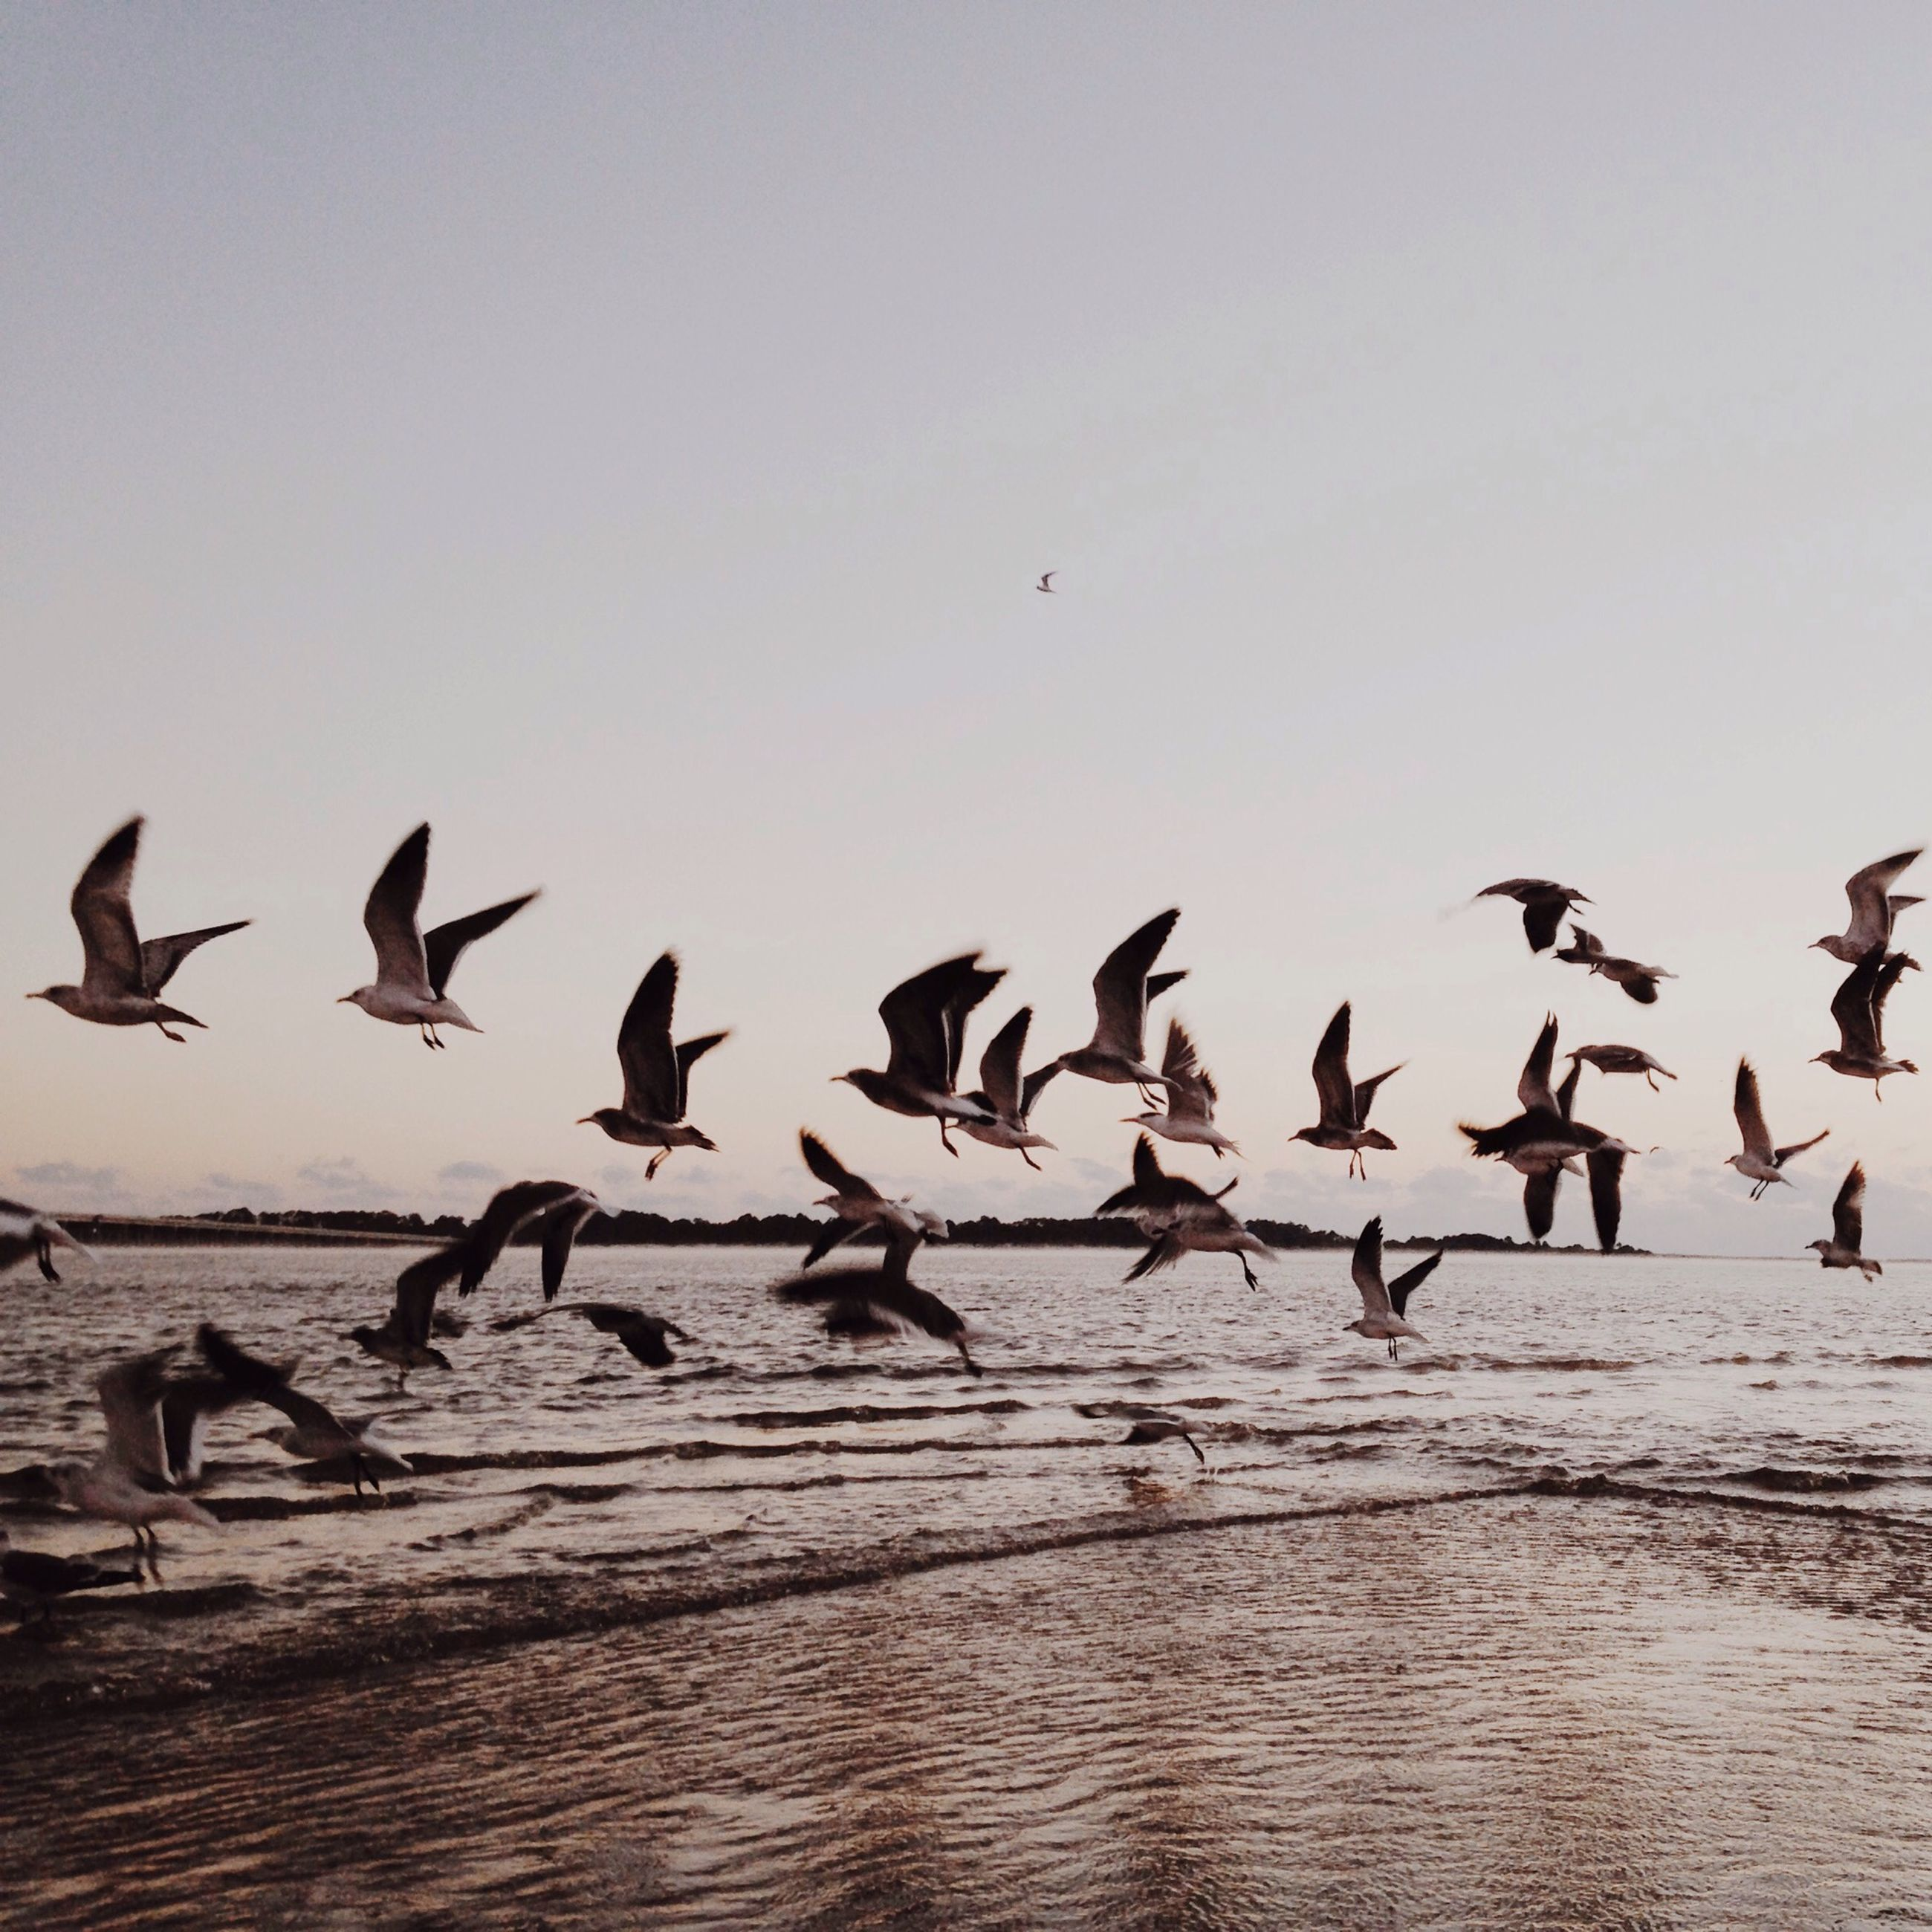 bird, animal themes, animals in the wild, wildlife, flock of birds, flying, medium group of animals, spread wings, nature, sky, vertebrate, togetherness, zoology, seagull, outdoors, beauty in nature, water, mid-air, no people